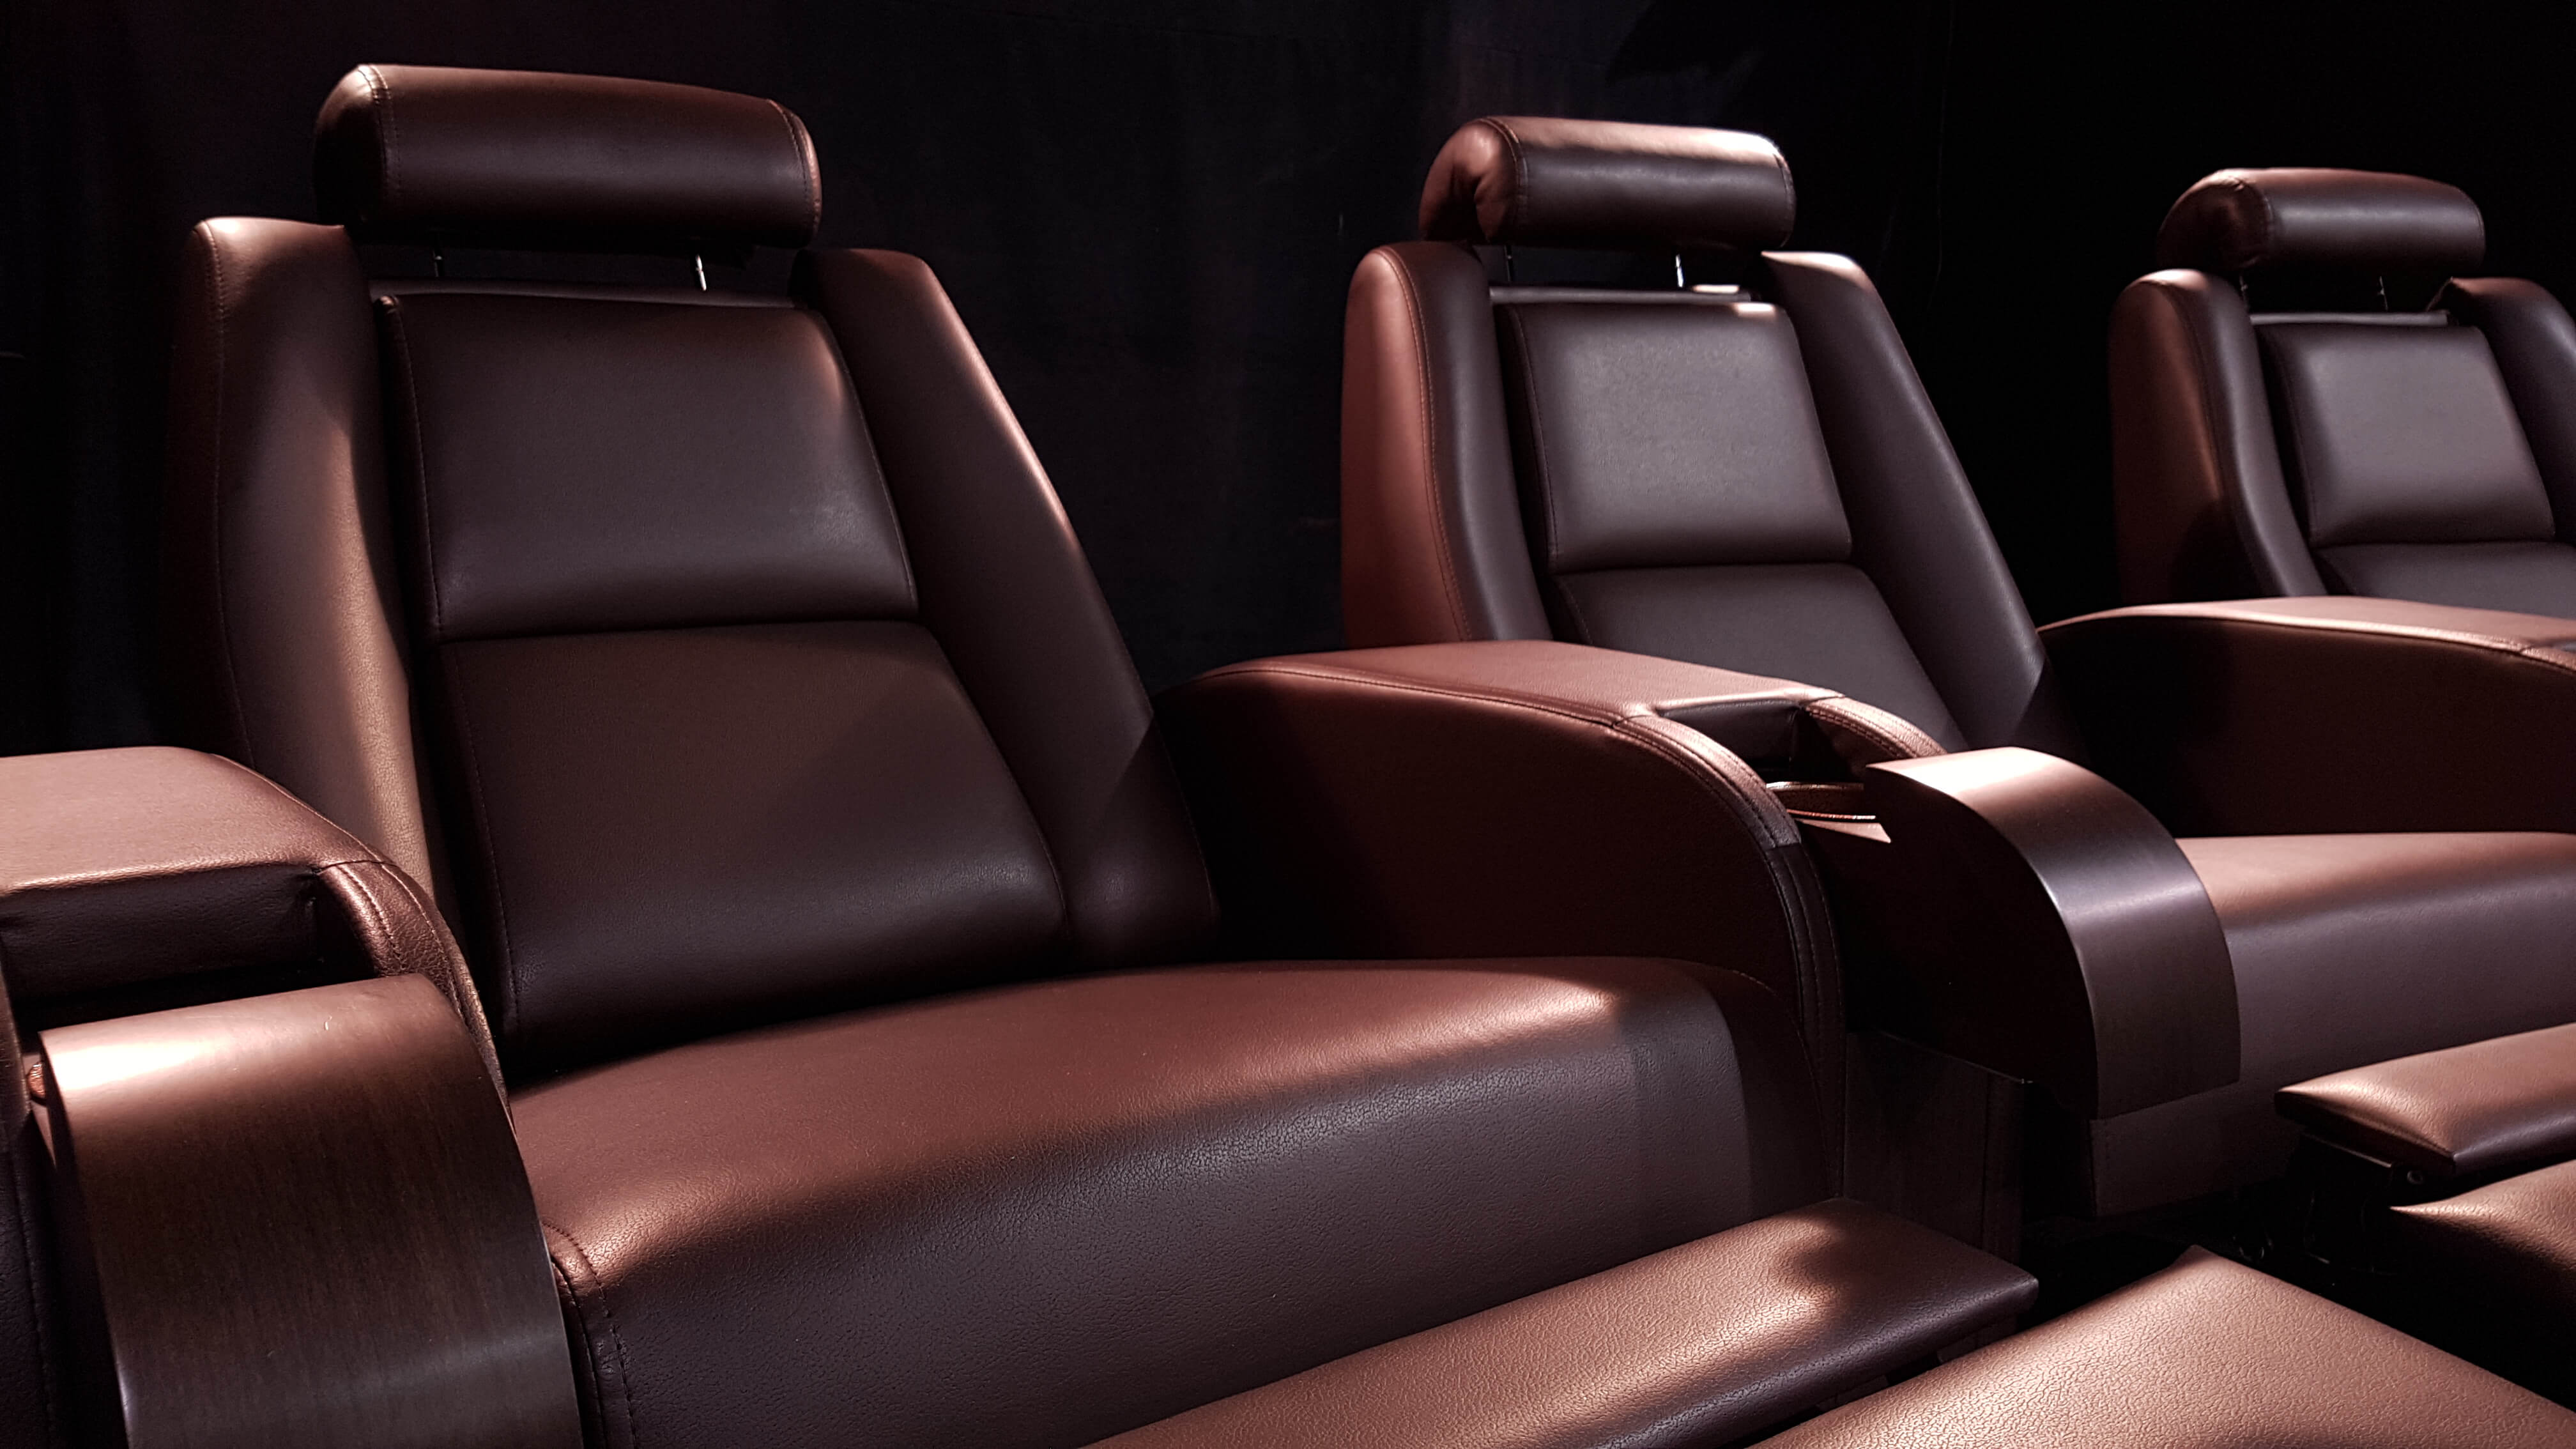 f1_brown_home_theater_seating (1)